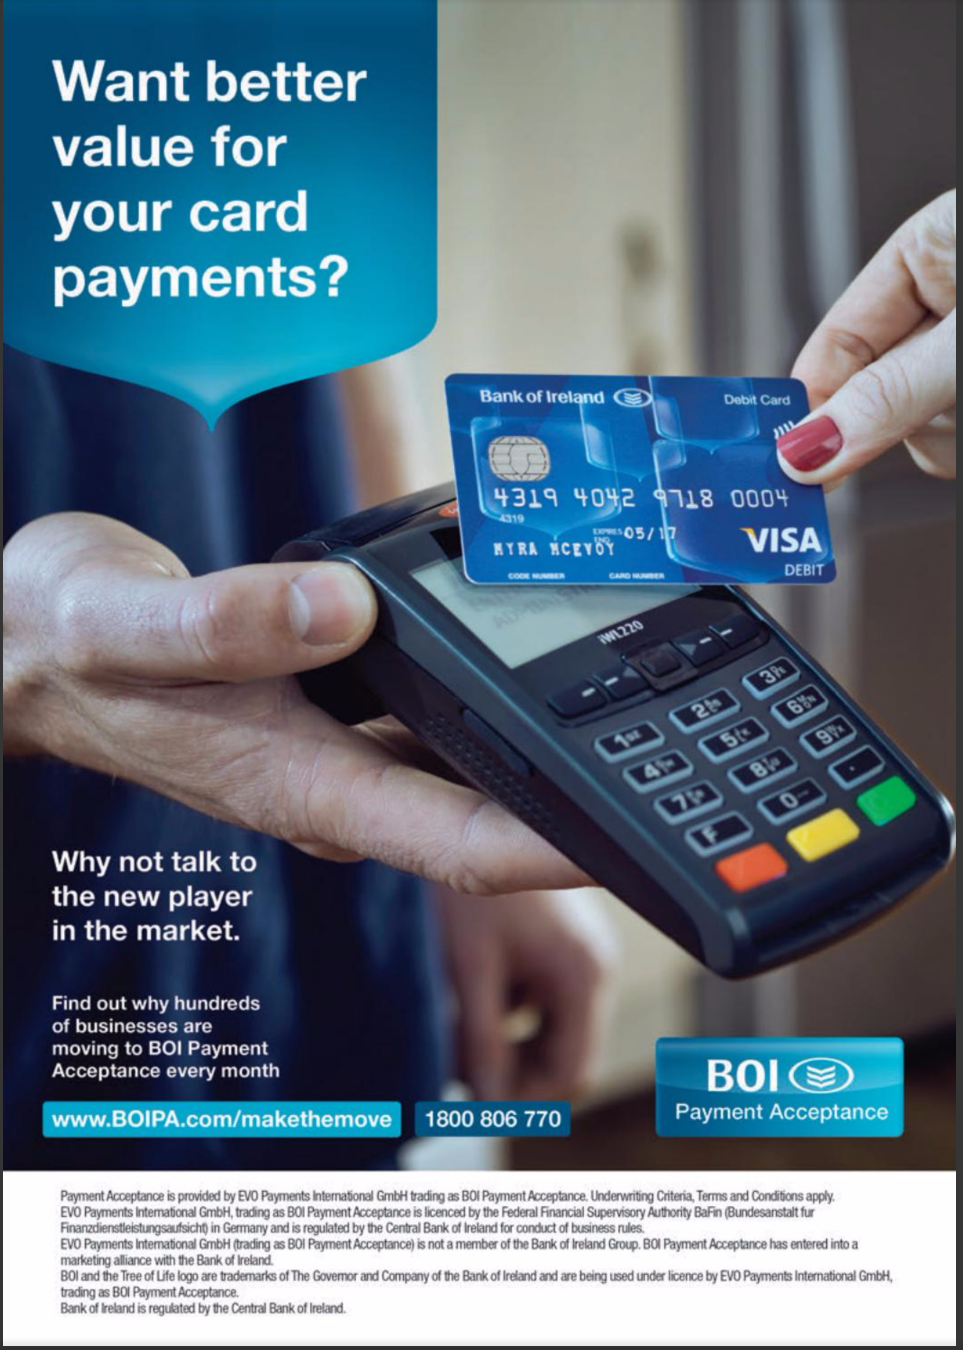 Bank of Ireland Payment Acceptance – Want better value for your card payments?